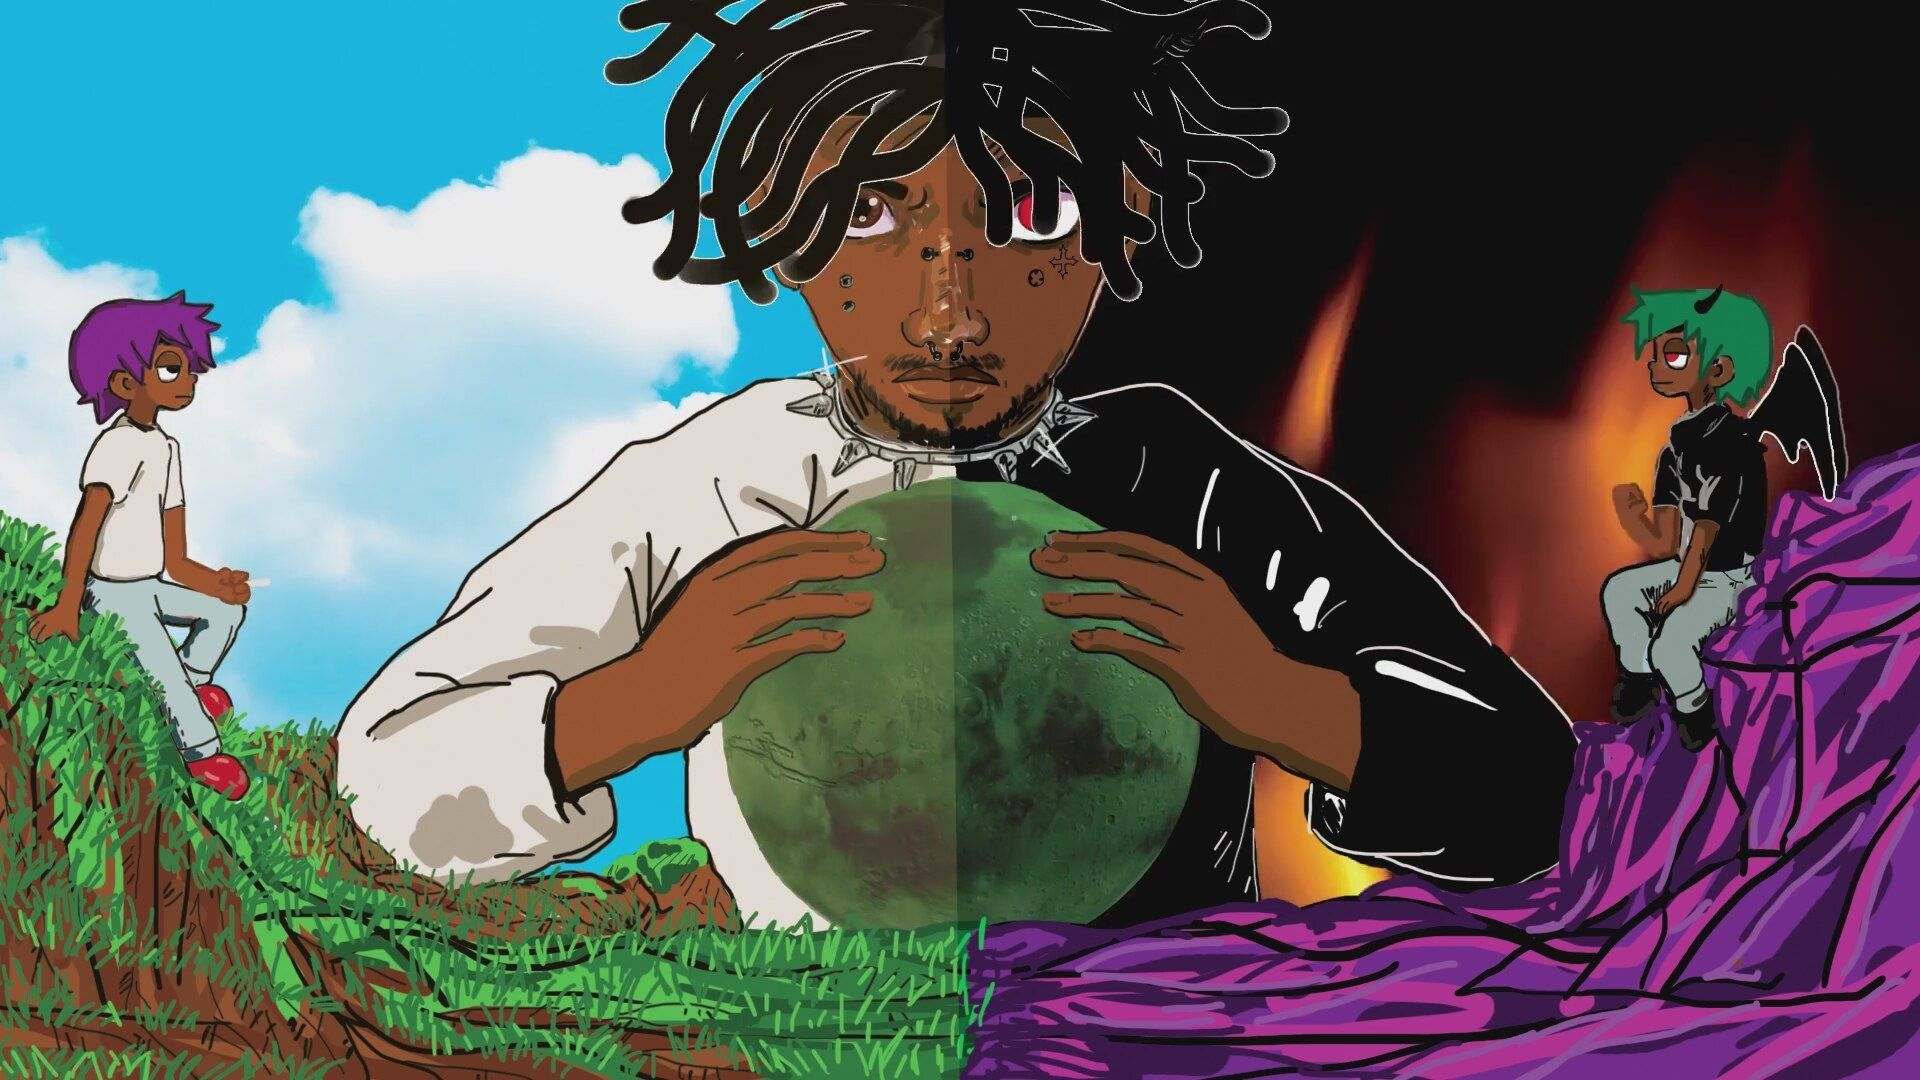 Lil Uzi Vert Cartoon Wallpapers Posted By Christopher Sellers